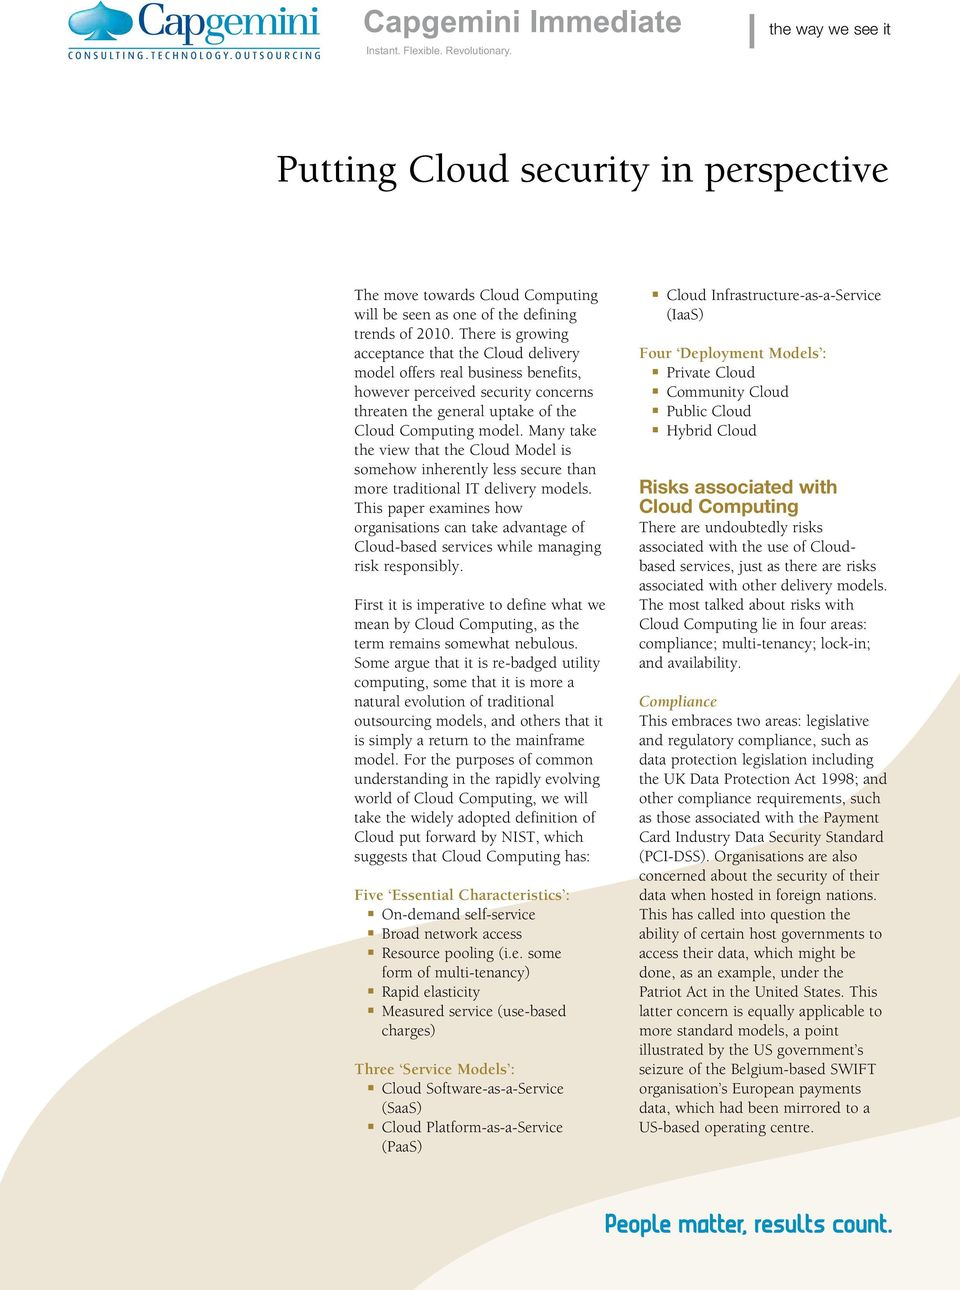 May take the view that the Cloud Model is somehow iheretly less secure tha more traditioal IT delivery models.